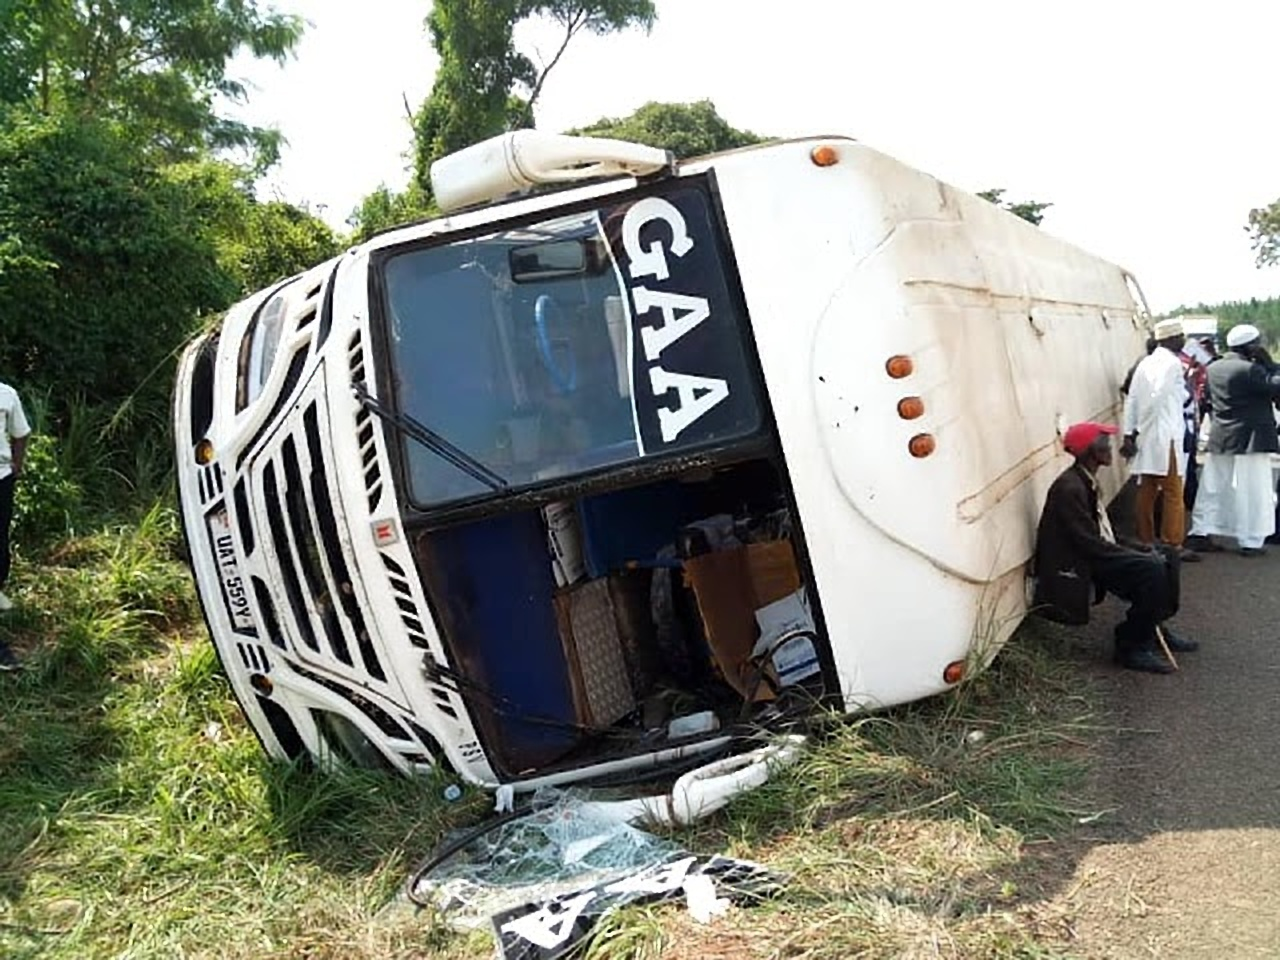 Gaagaa bus involved in tragic Kiryadongo accident on May 25, 2018. Gaagaa bus operations have been suspended by the Transport Licencing Board (FILE PHOTO)